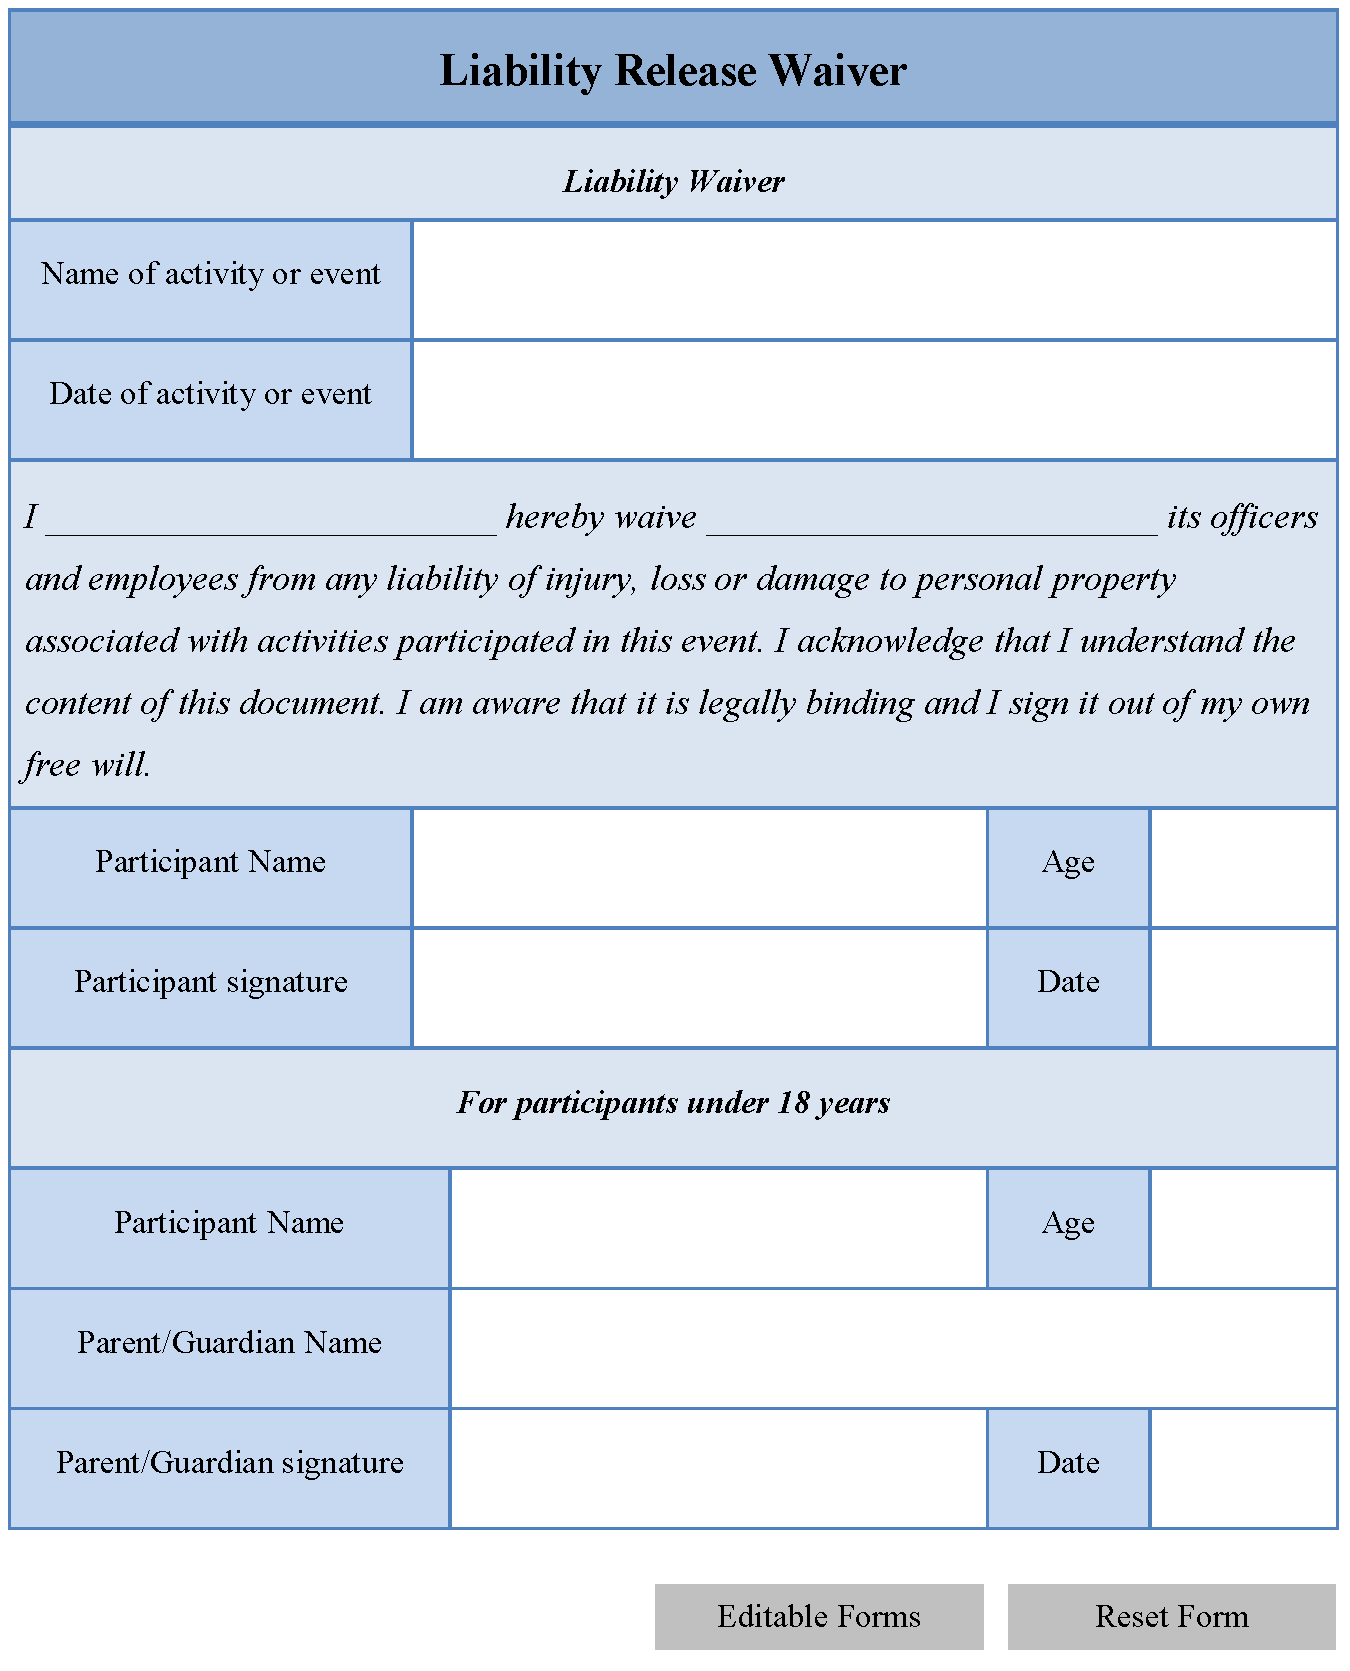 General liability waiver form free printable documents for Release from liability form template